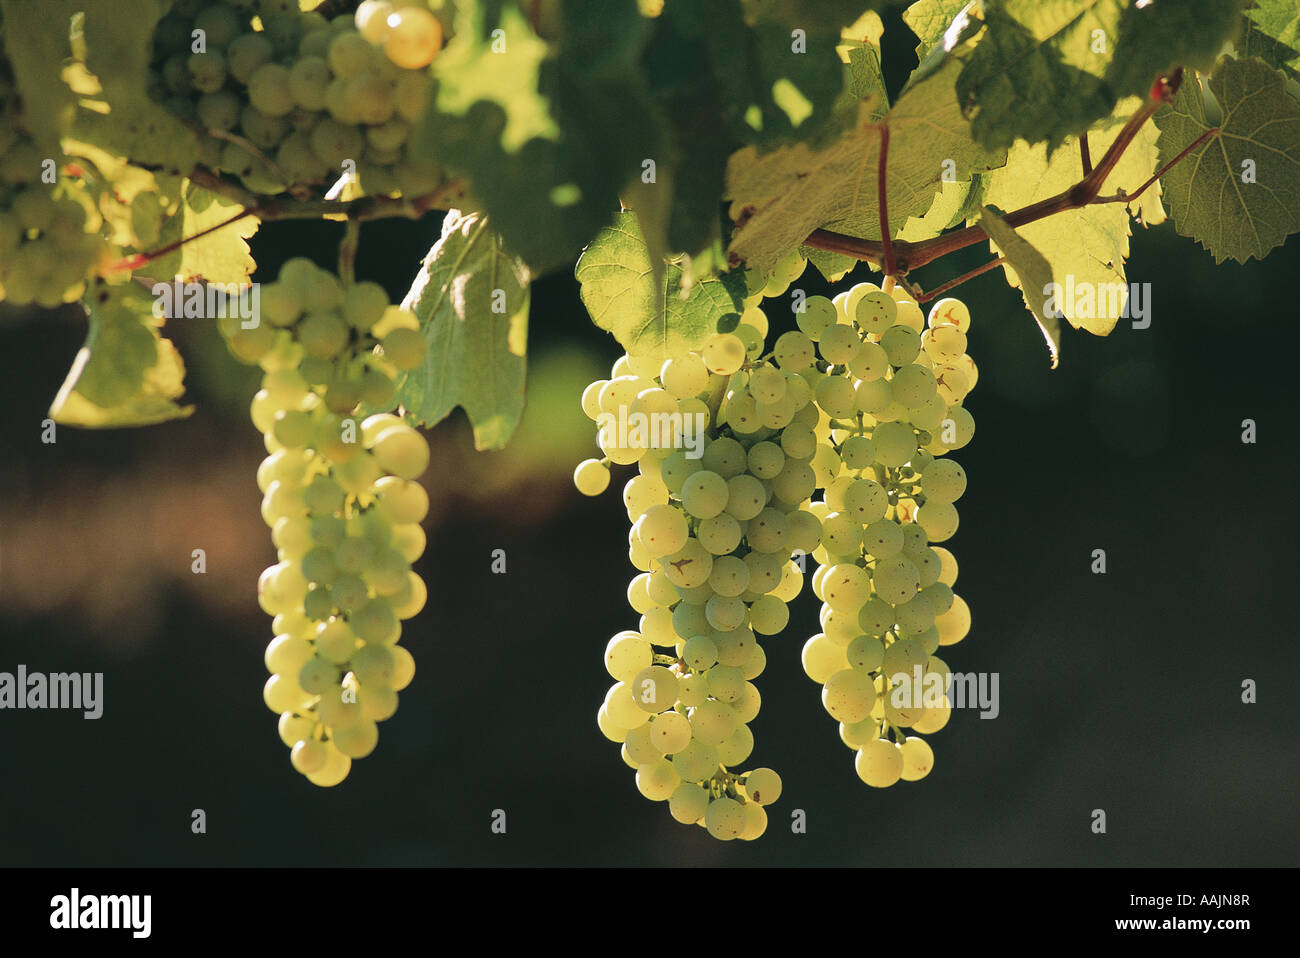 Grapes for wine wine growing on vines Western Cape South Africa - Stock Image